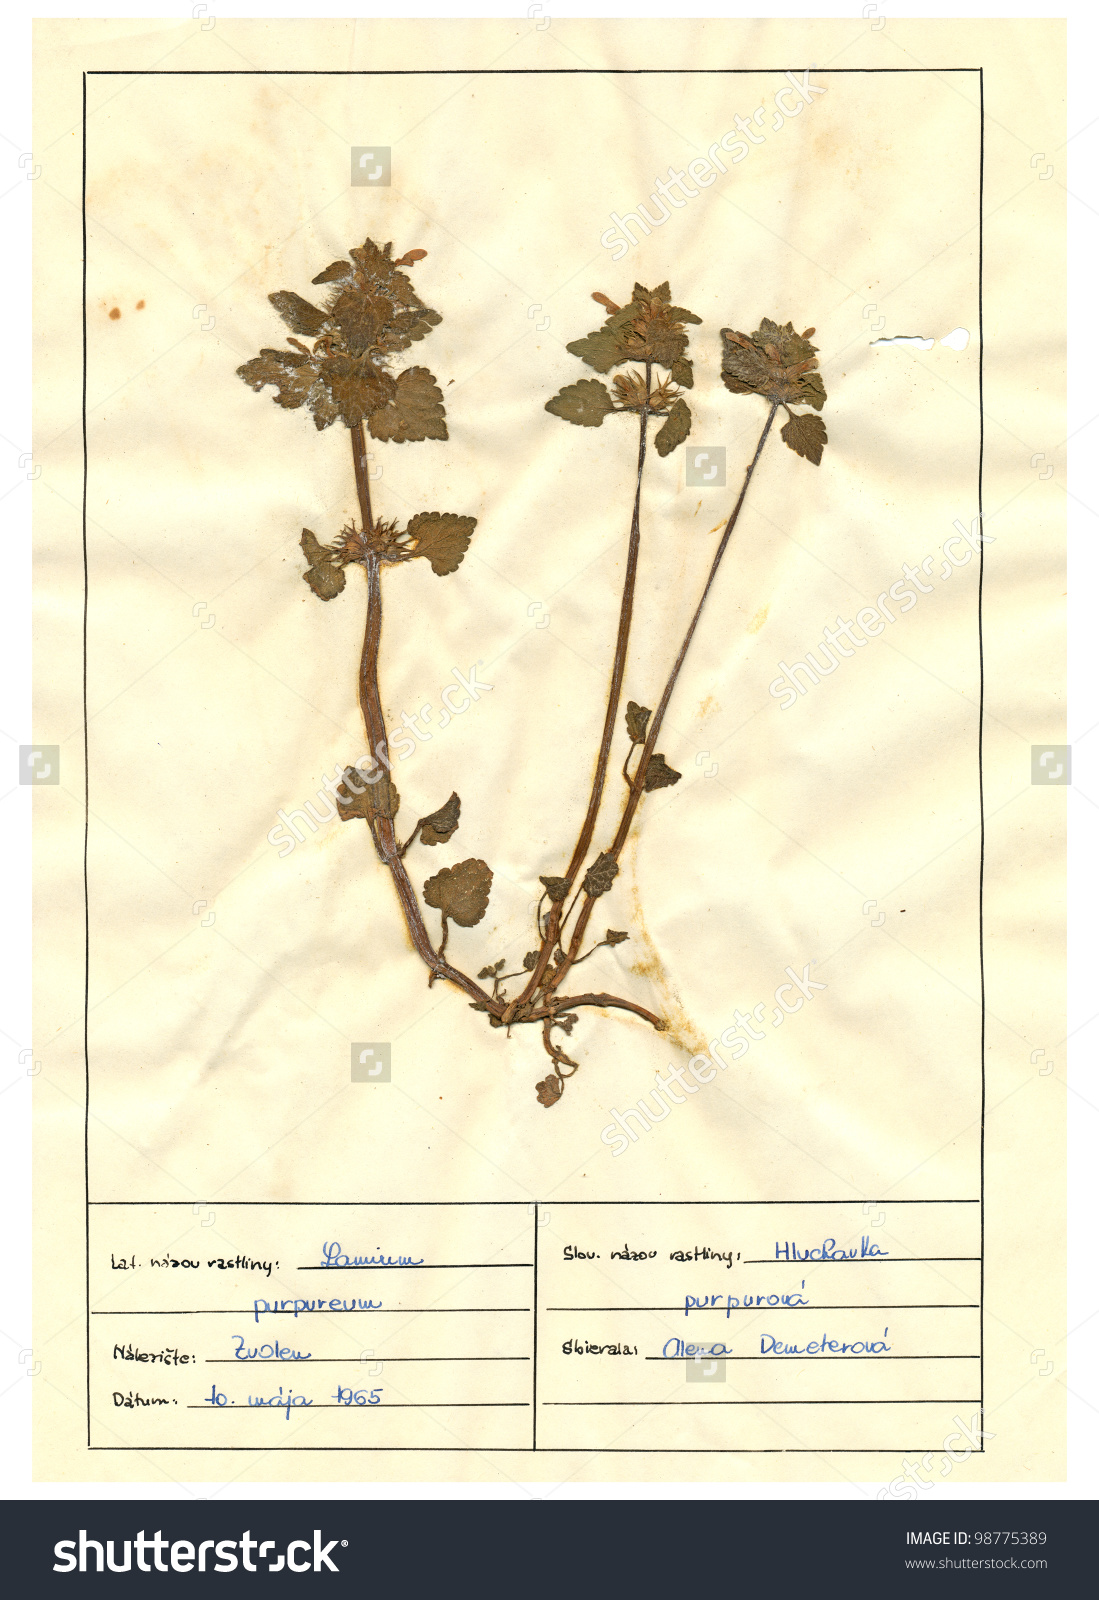 Herbarium Sheet Pressed Plant Red Deadnettle Stock Photo 98775389.